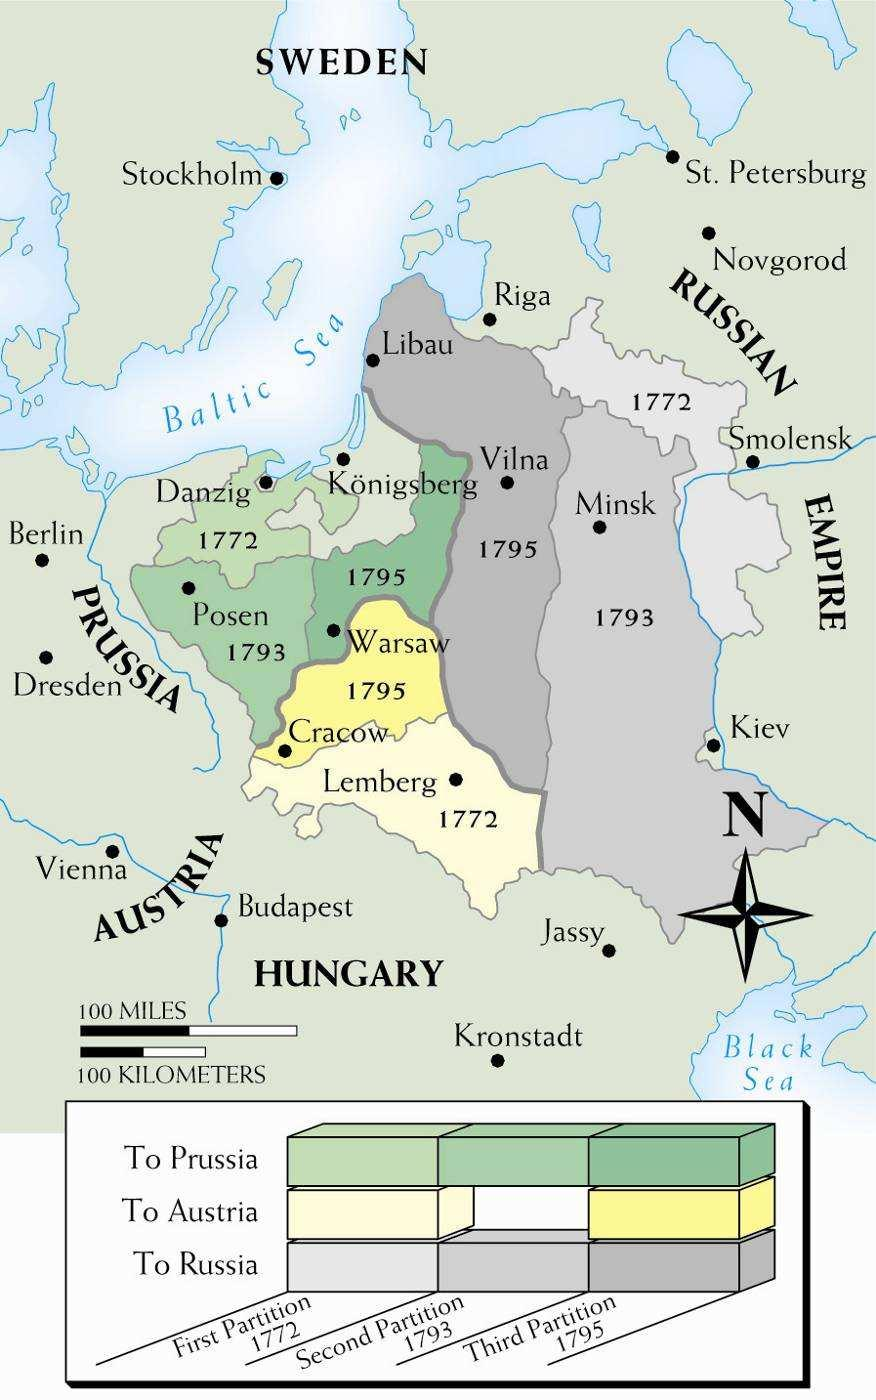 The Partition of Poland Land split by Russia, Austria, and Prussia Proved that without a strong bureaucracy, monarchy and army, a nation could not survive The End of the Eighteenth Century in Central